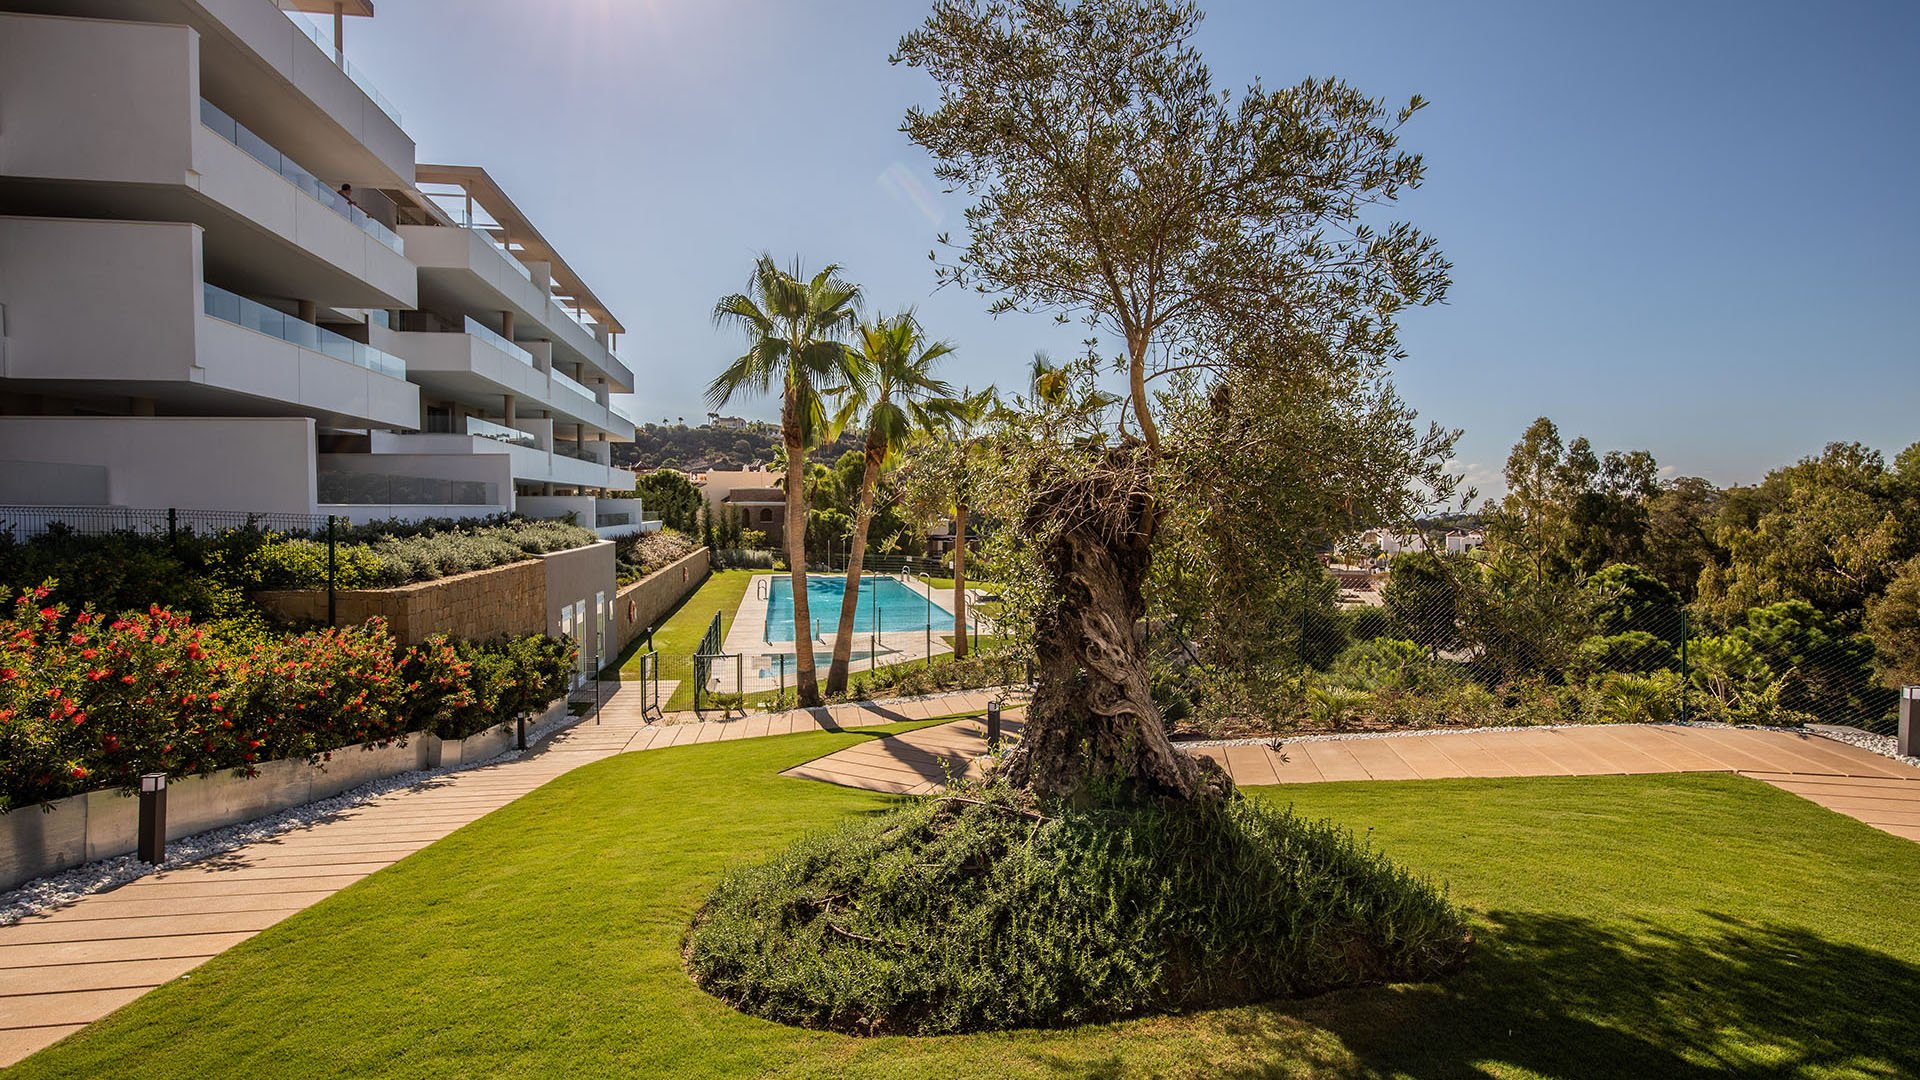 Botanic: Modern apartments at Los Arqueros Golf in Benahavís